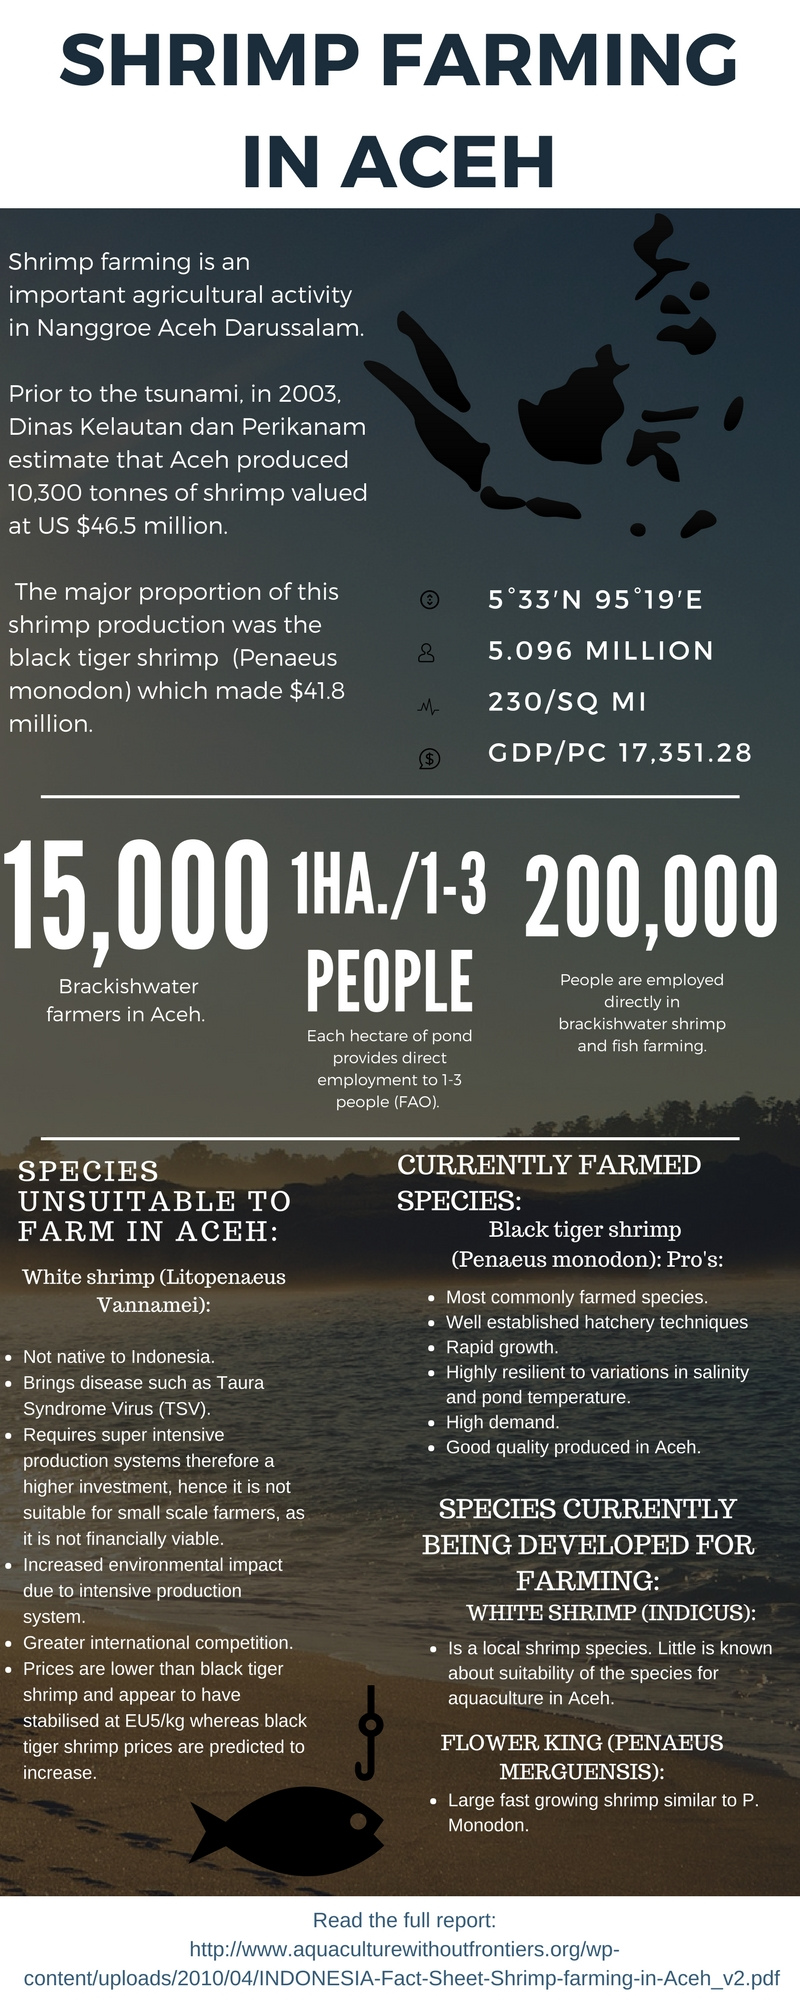 Shrimp Farming in Aceh | AwF - Aquaculture without Frontiers